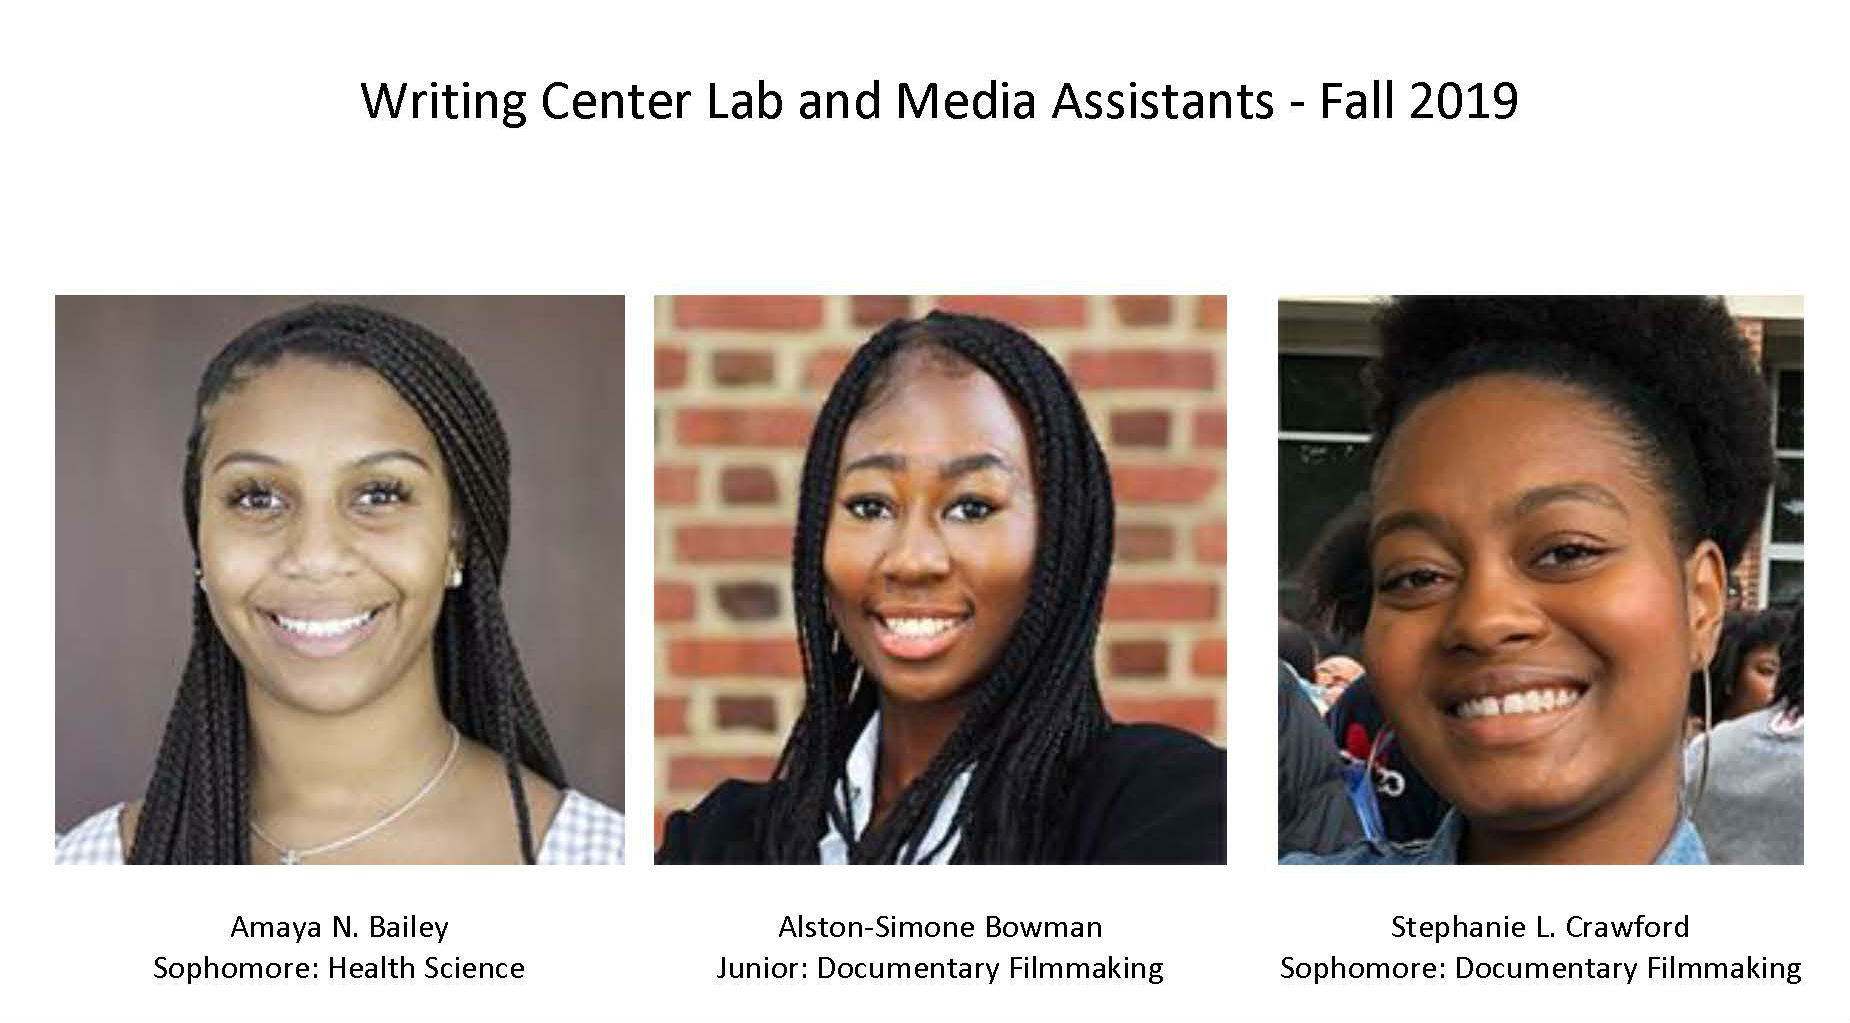 Writing Center Lab and Media Assistants - Fall 2019